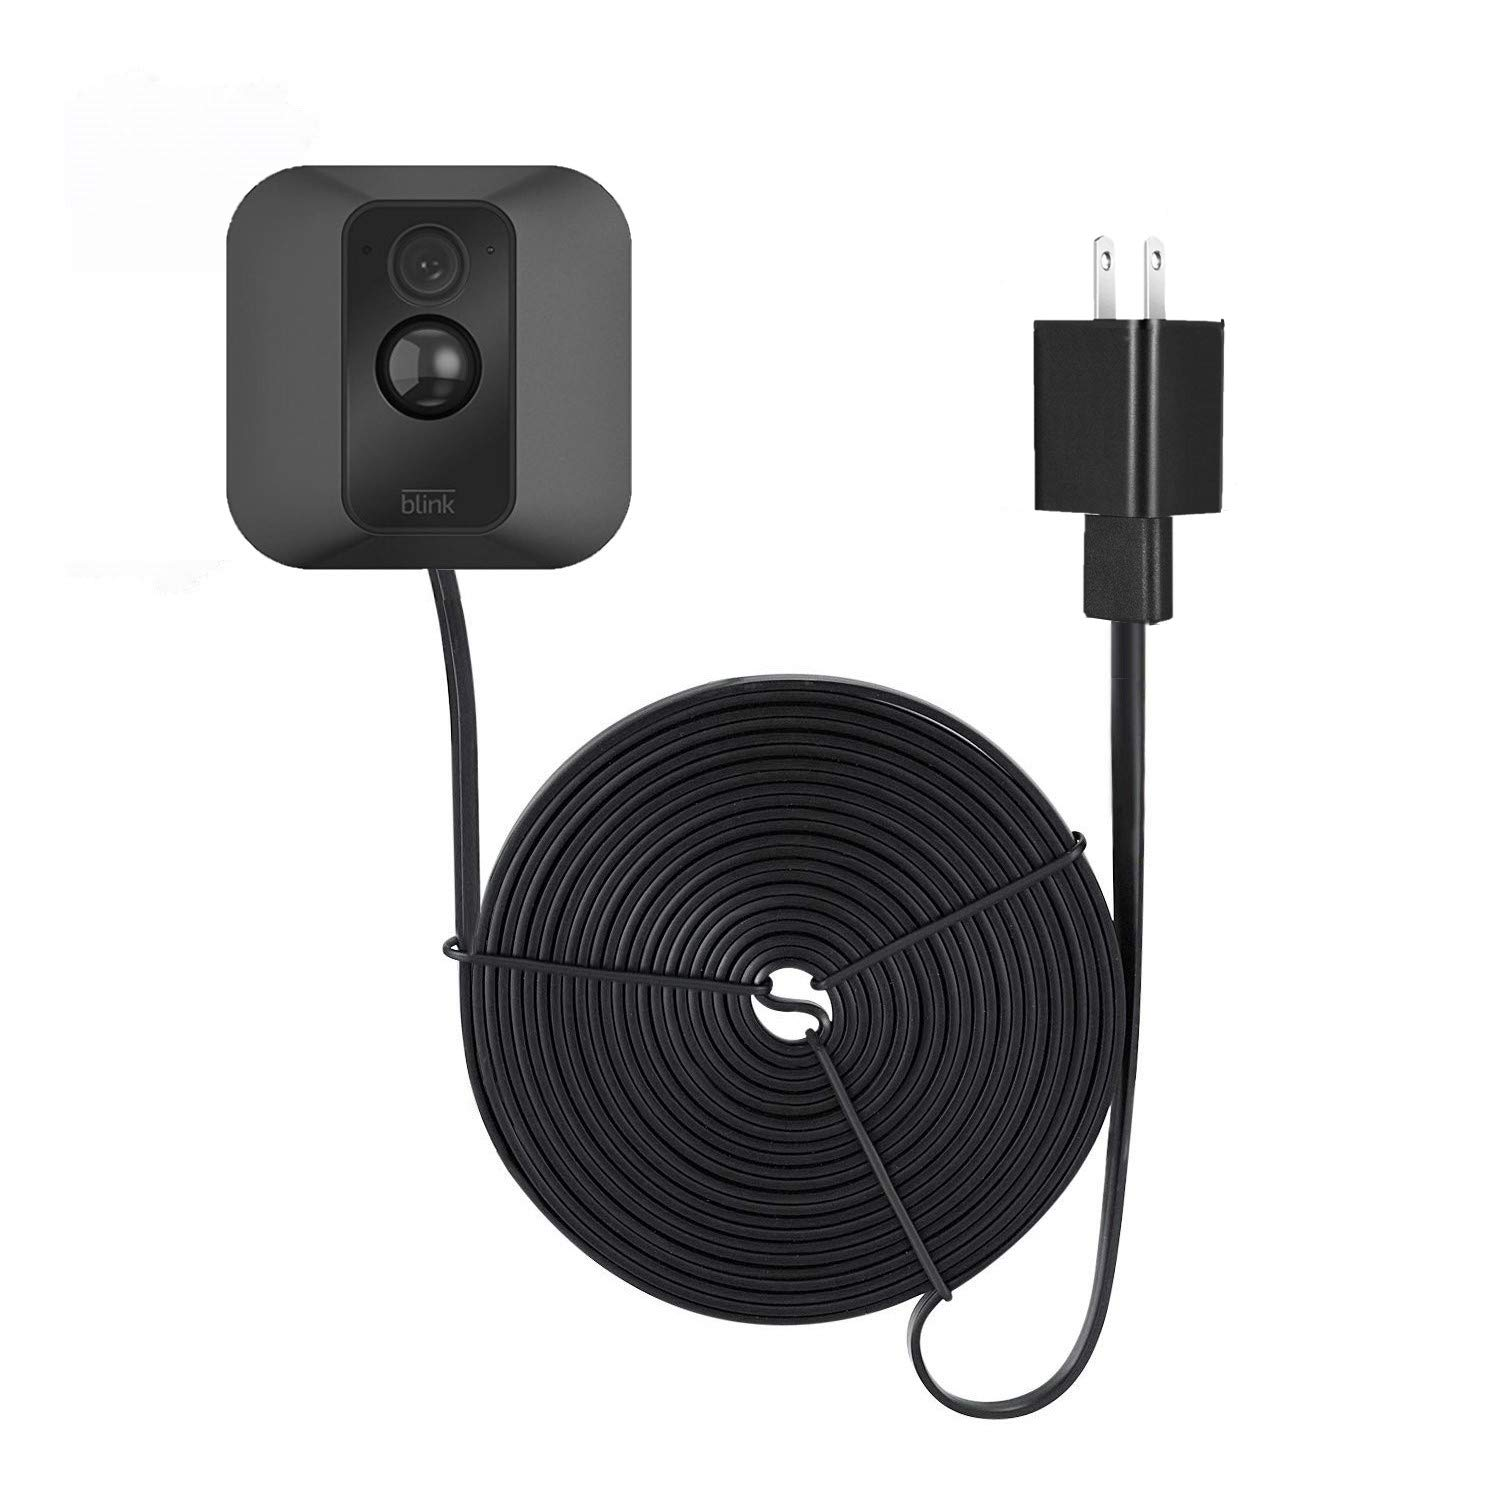 Weatherproof Power Cable for Blink XT Outdoor & Indoor Camera - Long and  Thin 16ft Cable to Continuously Operate Your Blink XT & Indoor Camera - by